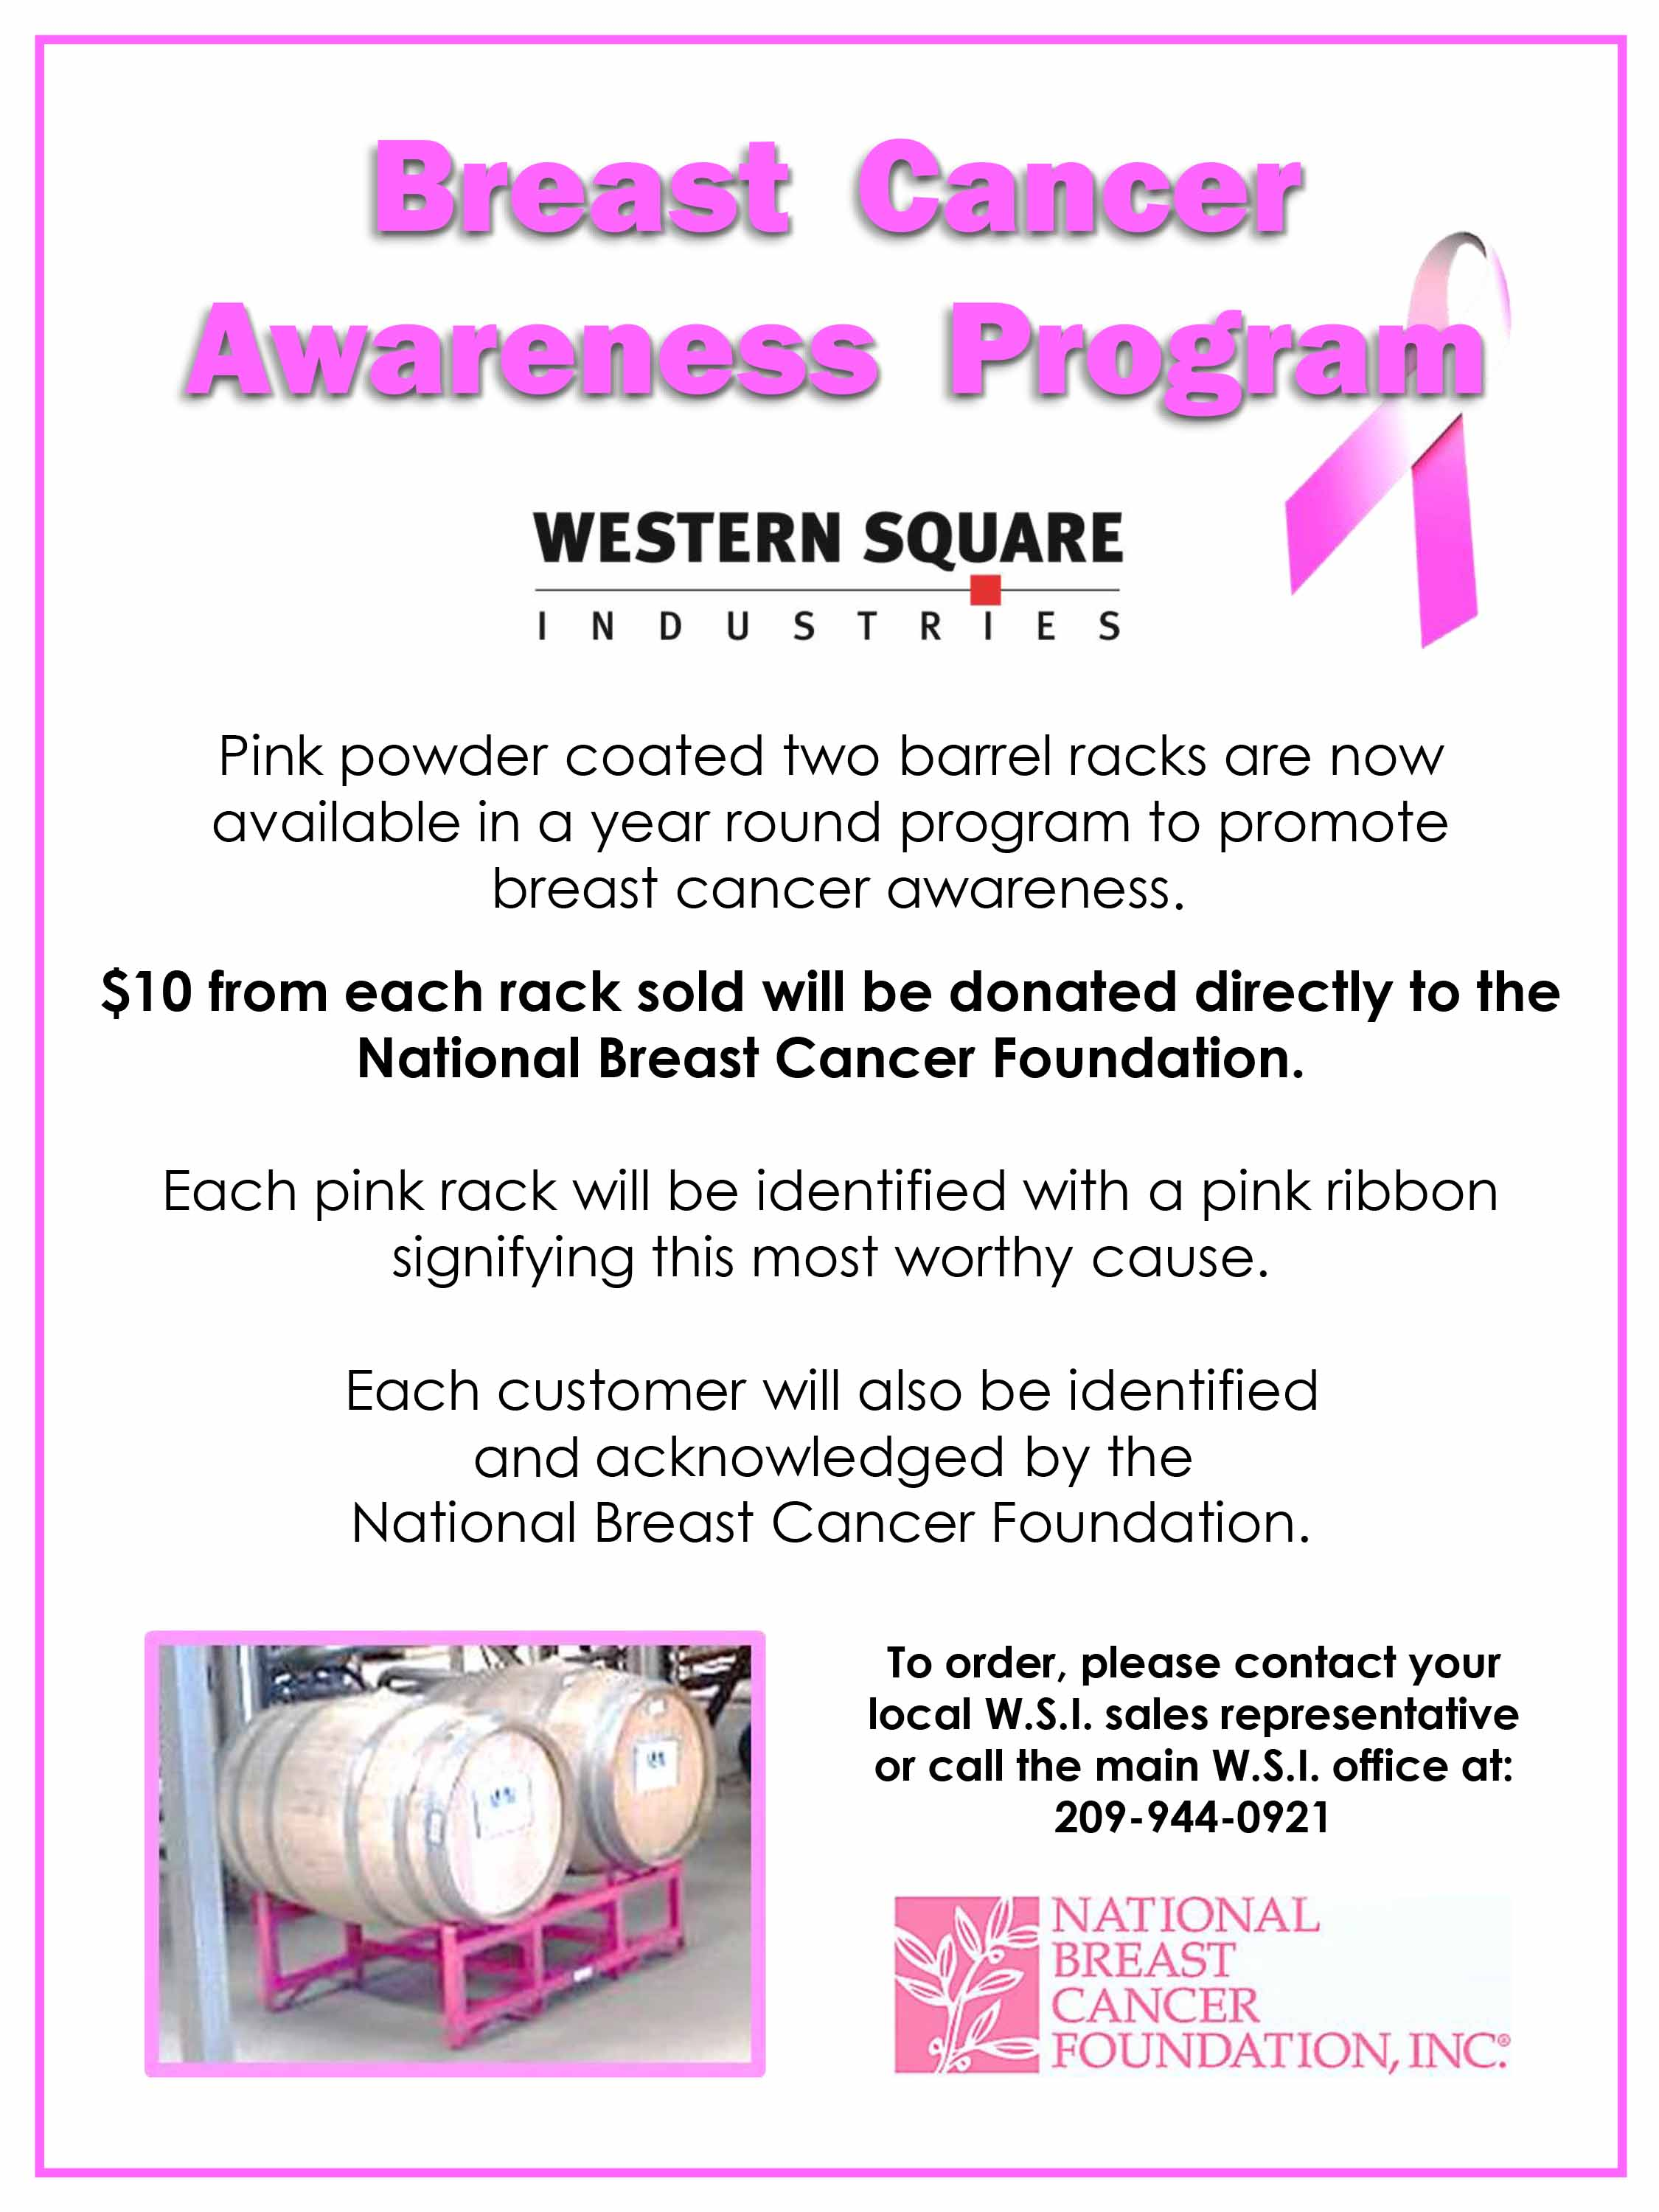 Breast Cancer Awareness Pink Rack Sales Program.jpg